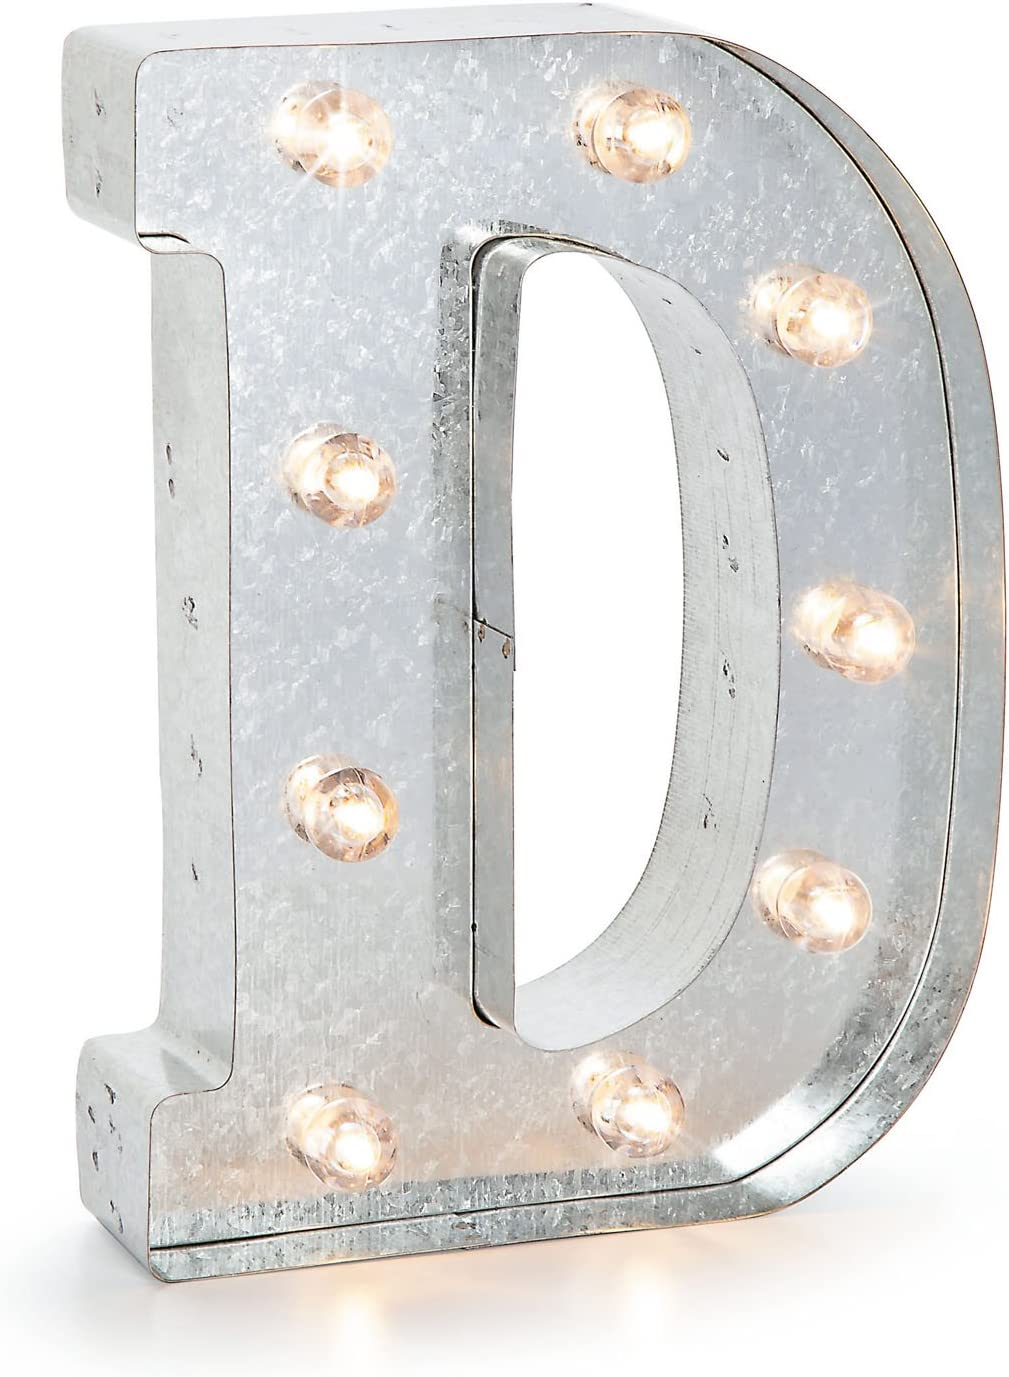 Darice Marquee Letters - D - Galvanized Silver - 9.875 inches